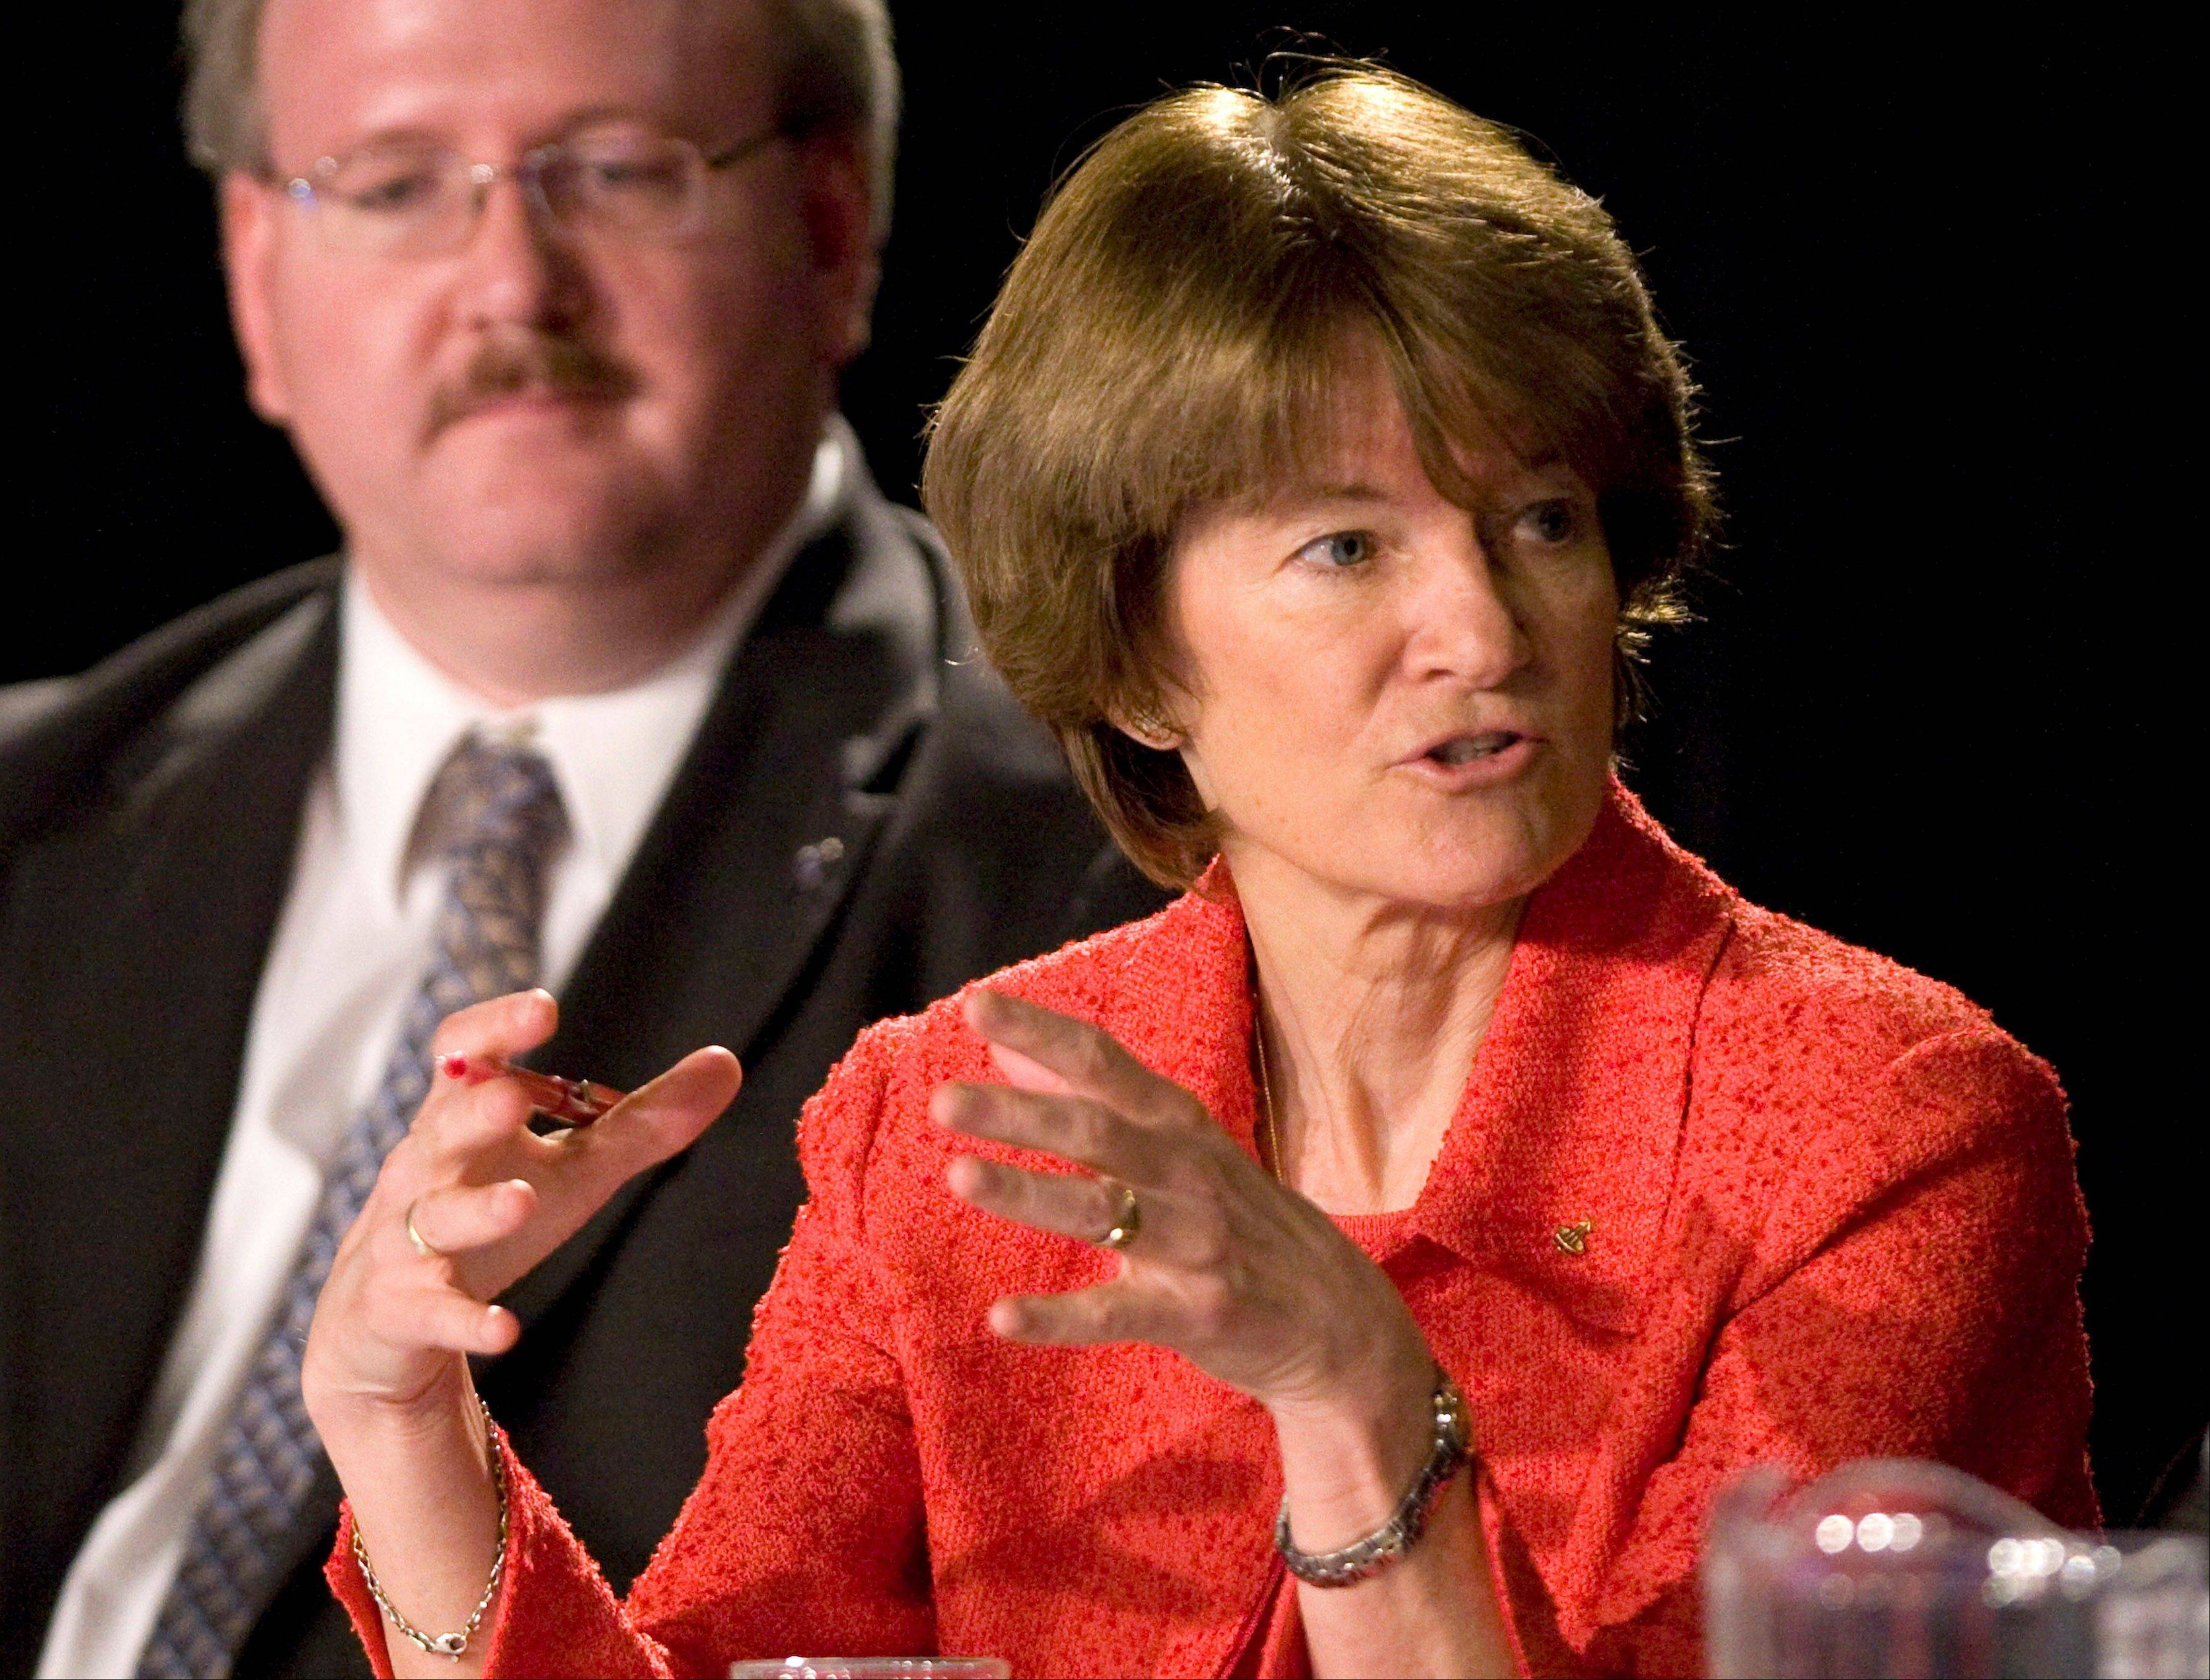 In this July 28, 2009, file photo, former astronaut Dr. Sally Ride, with Jeffrey Greason in the background, comments during a public meeting of the Review of U.S. Human Space Flight Plans Committee, in League City, Texas. Ride, the first American woman in space, died Monday, July 23, 2012 after a 17-month battle with pancreatic cancer. She was 61.